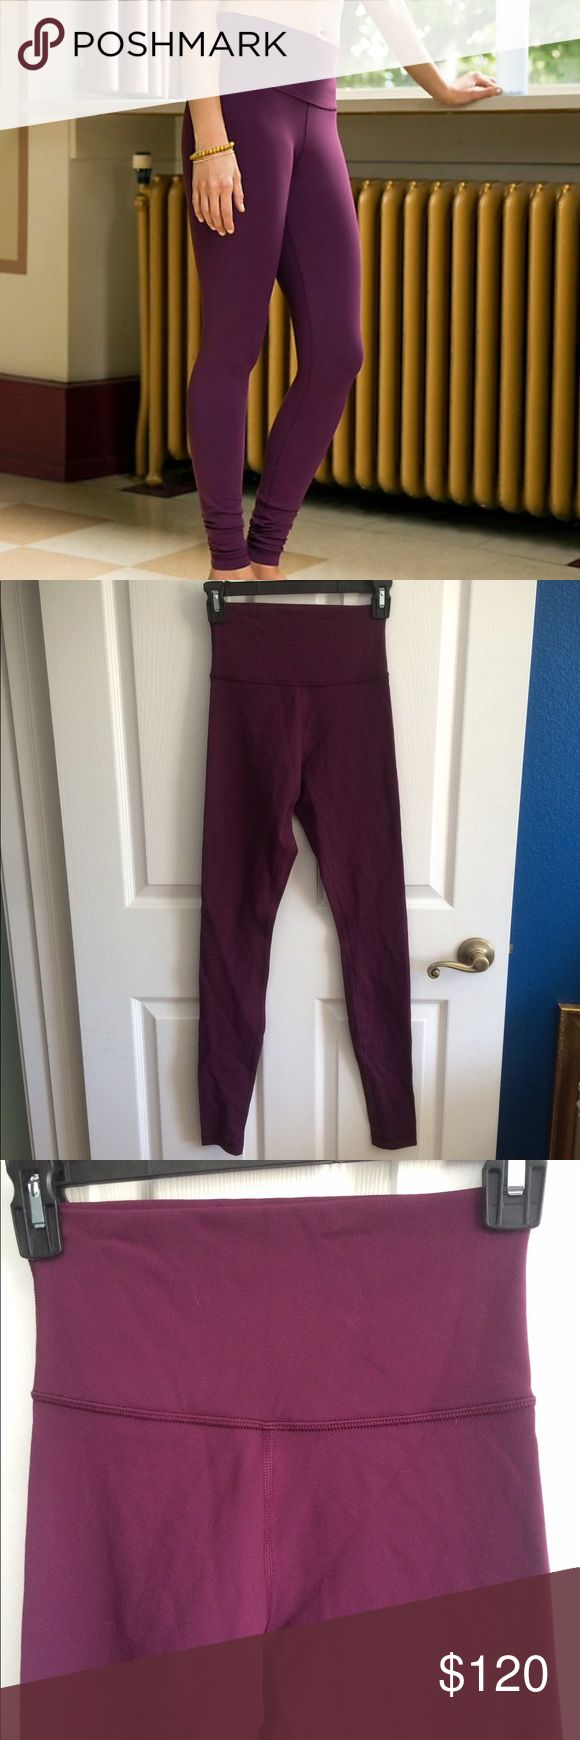 NEW lululemon Wunder Under Pant Hi/Lo Bordeaux 4 RARE and BRAND NEW lululemon Wunder Under Pant High/Low Bordeaux size 4. Never worn. Wear the waistband high or fold it down for a different fit. Inside tag still attached. lululemon athletica Pants Leggings